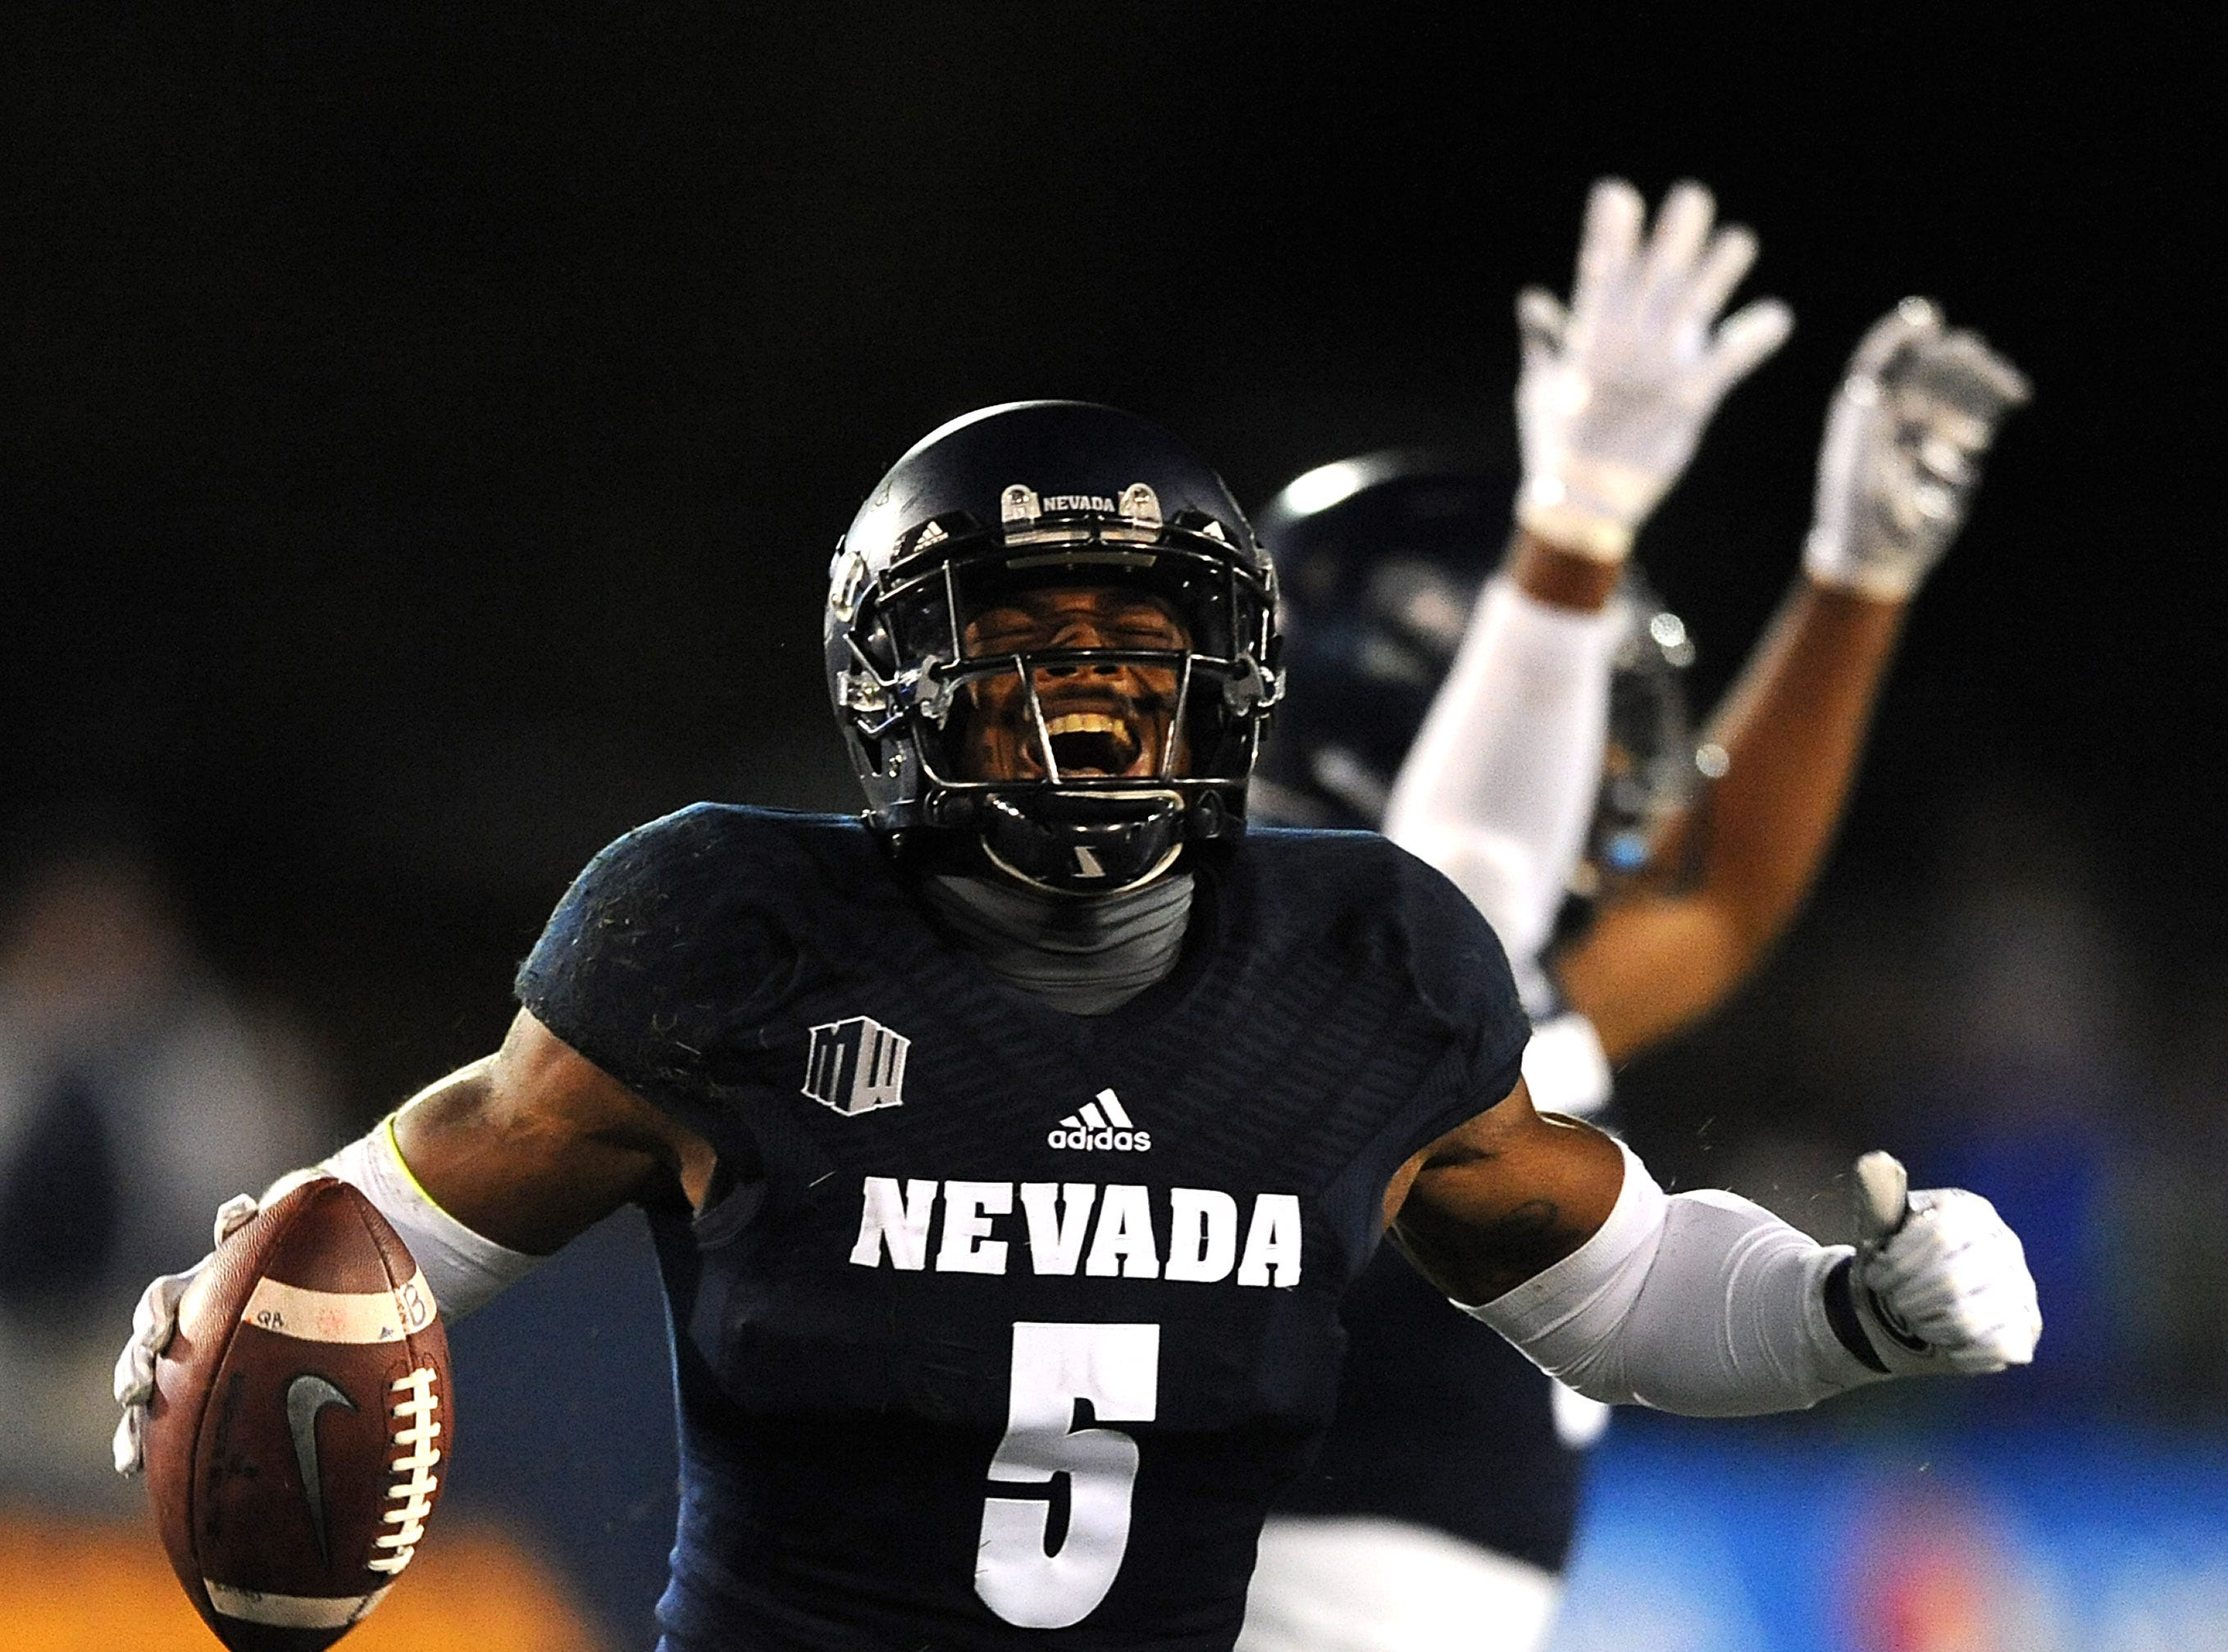 Nevada's Dameon Baber (5) celebrates a first half interception while taking on Boise St. during their football game at Mackay Stadium in Reno on Oct. 13, 2018.